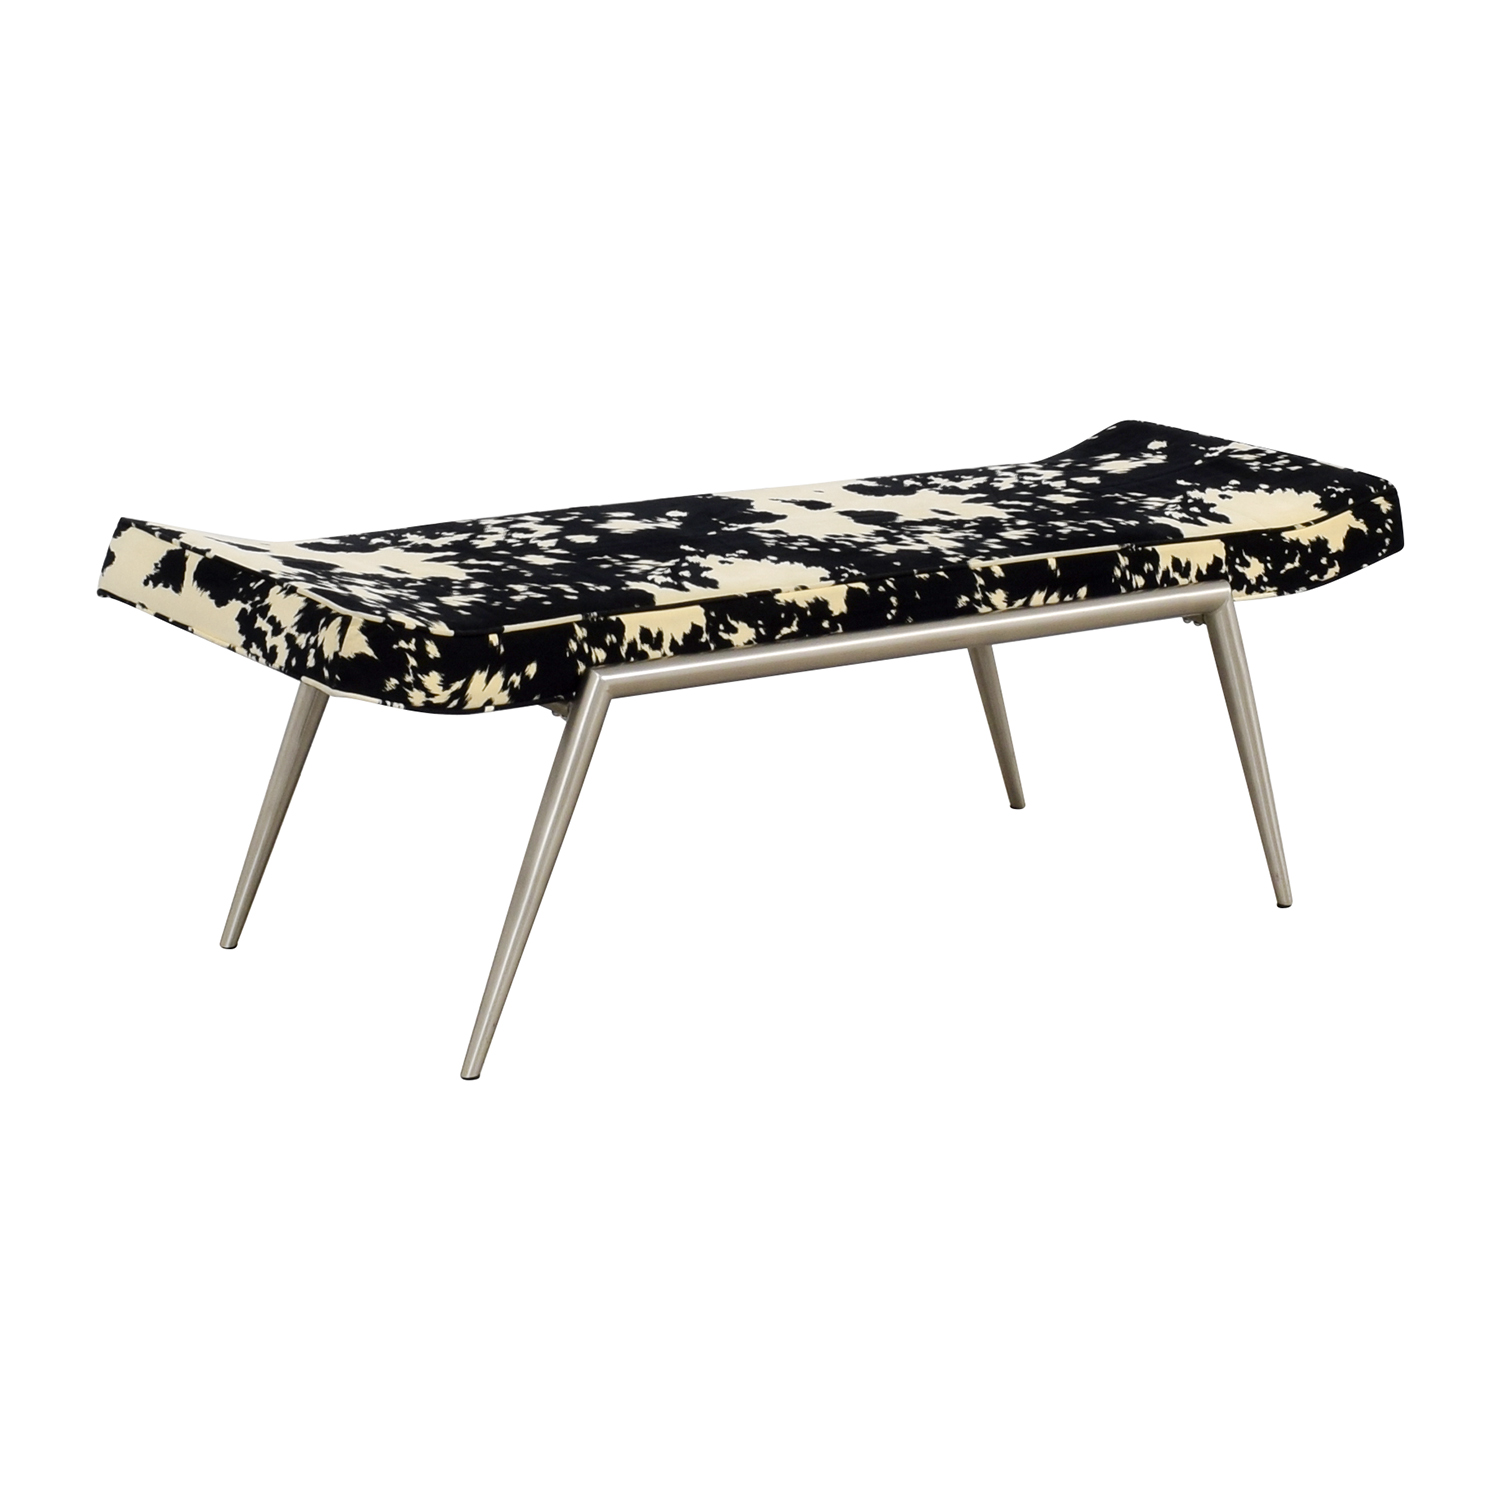 Black and White Upholstered Bench second hand